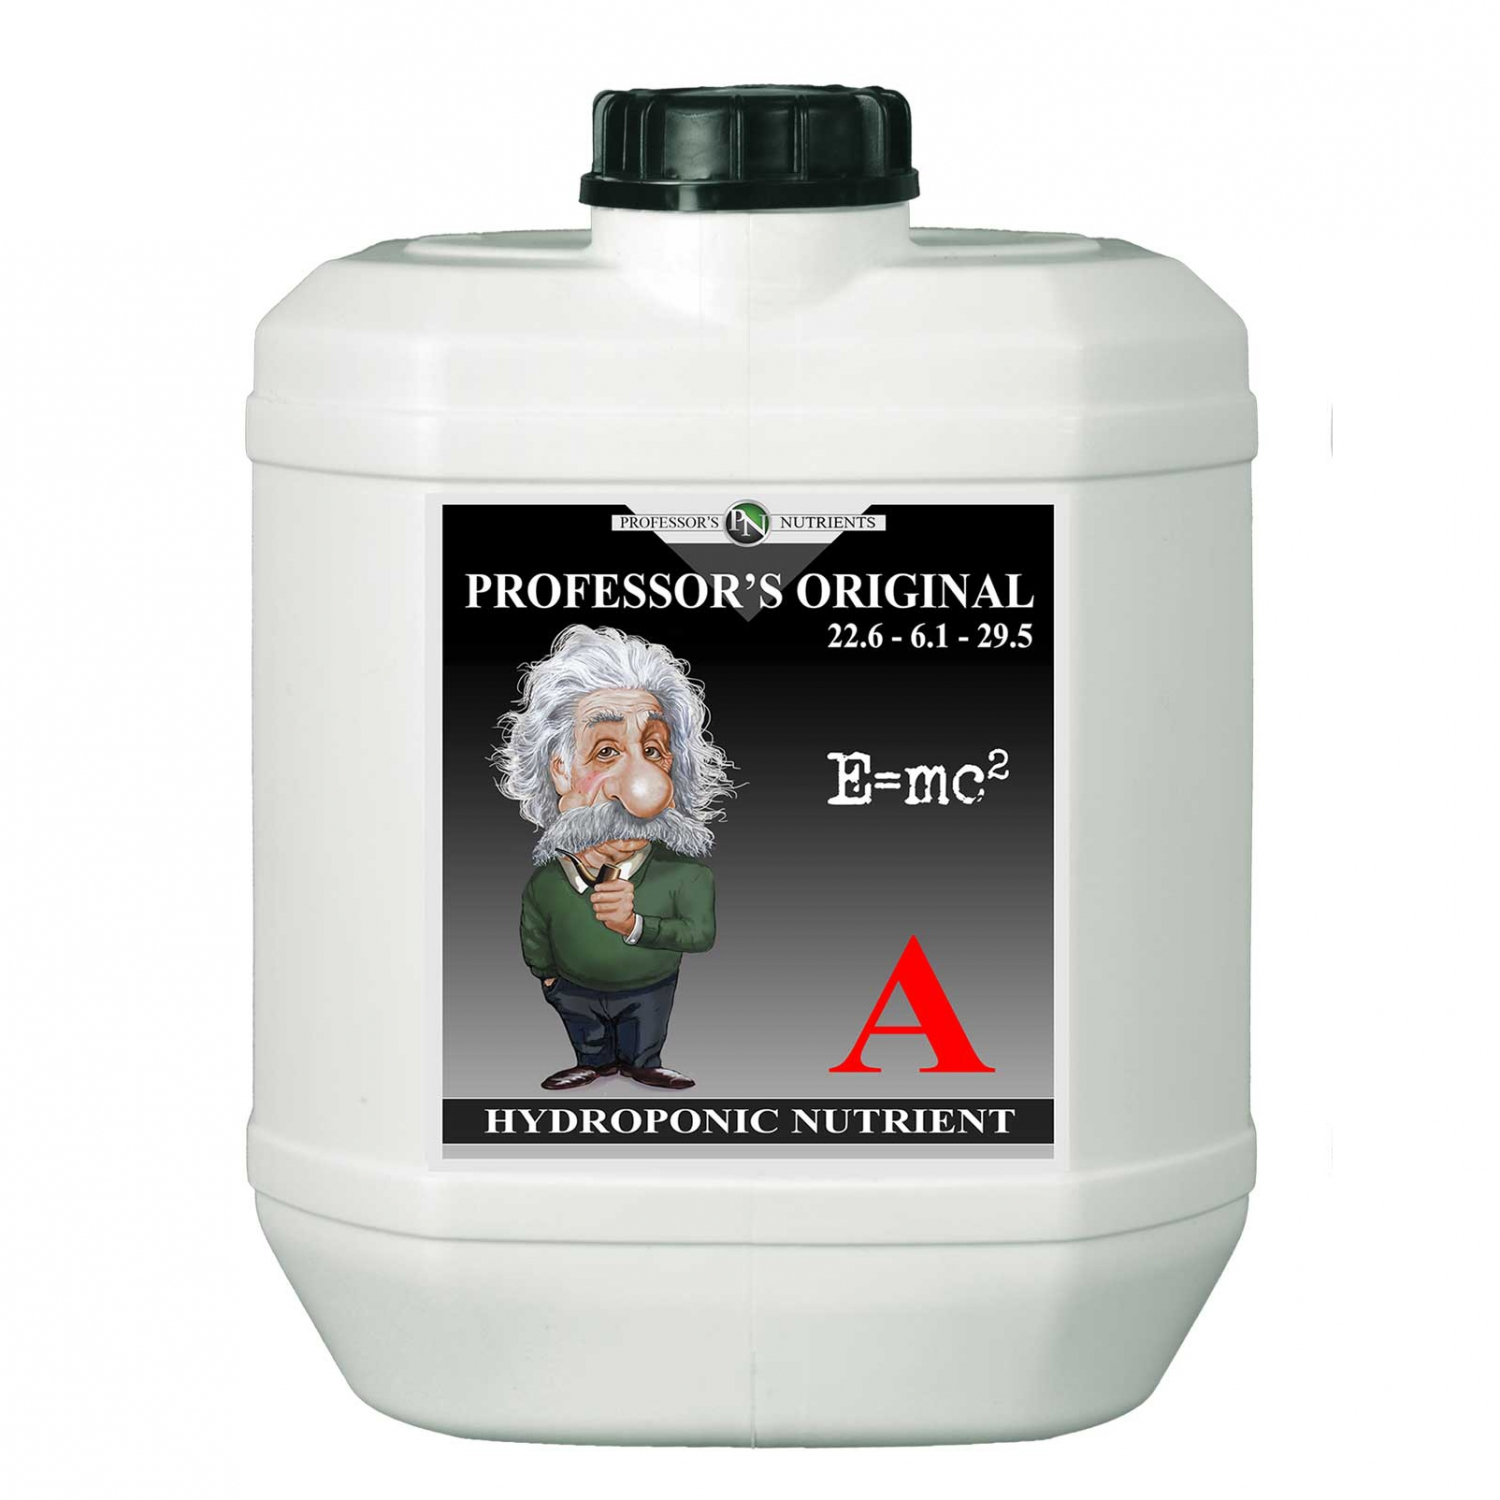 Professor's Original Nutrient Part A by Professor's Nutrients